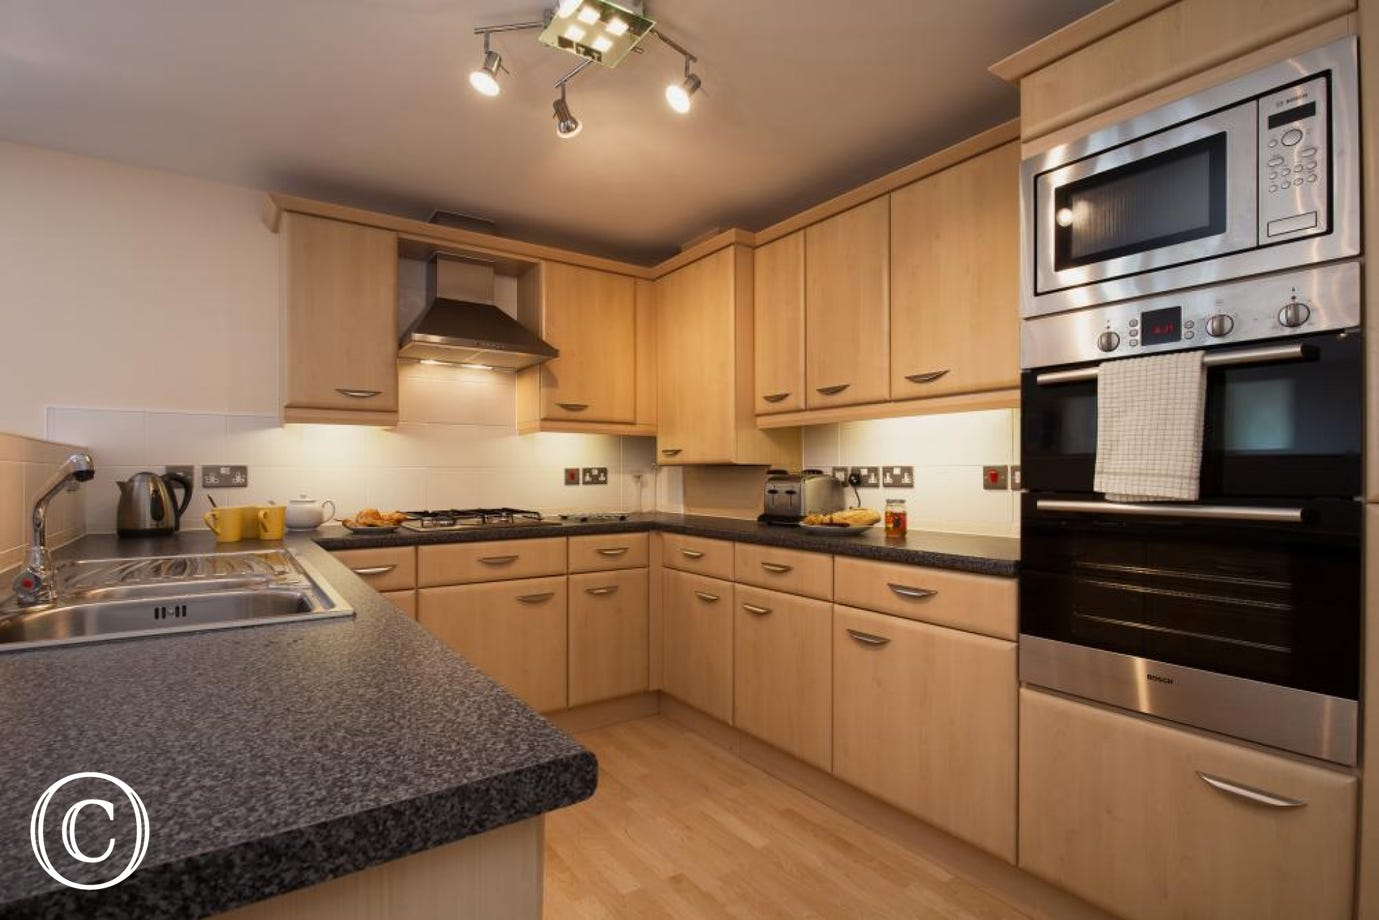 Dawlish Self-Catering Holiday Apartment - Fully Equipped Kitchen, perfect for Preparing Family Meals